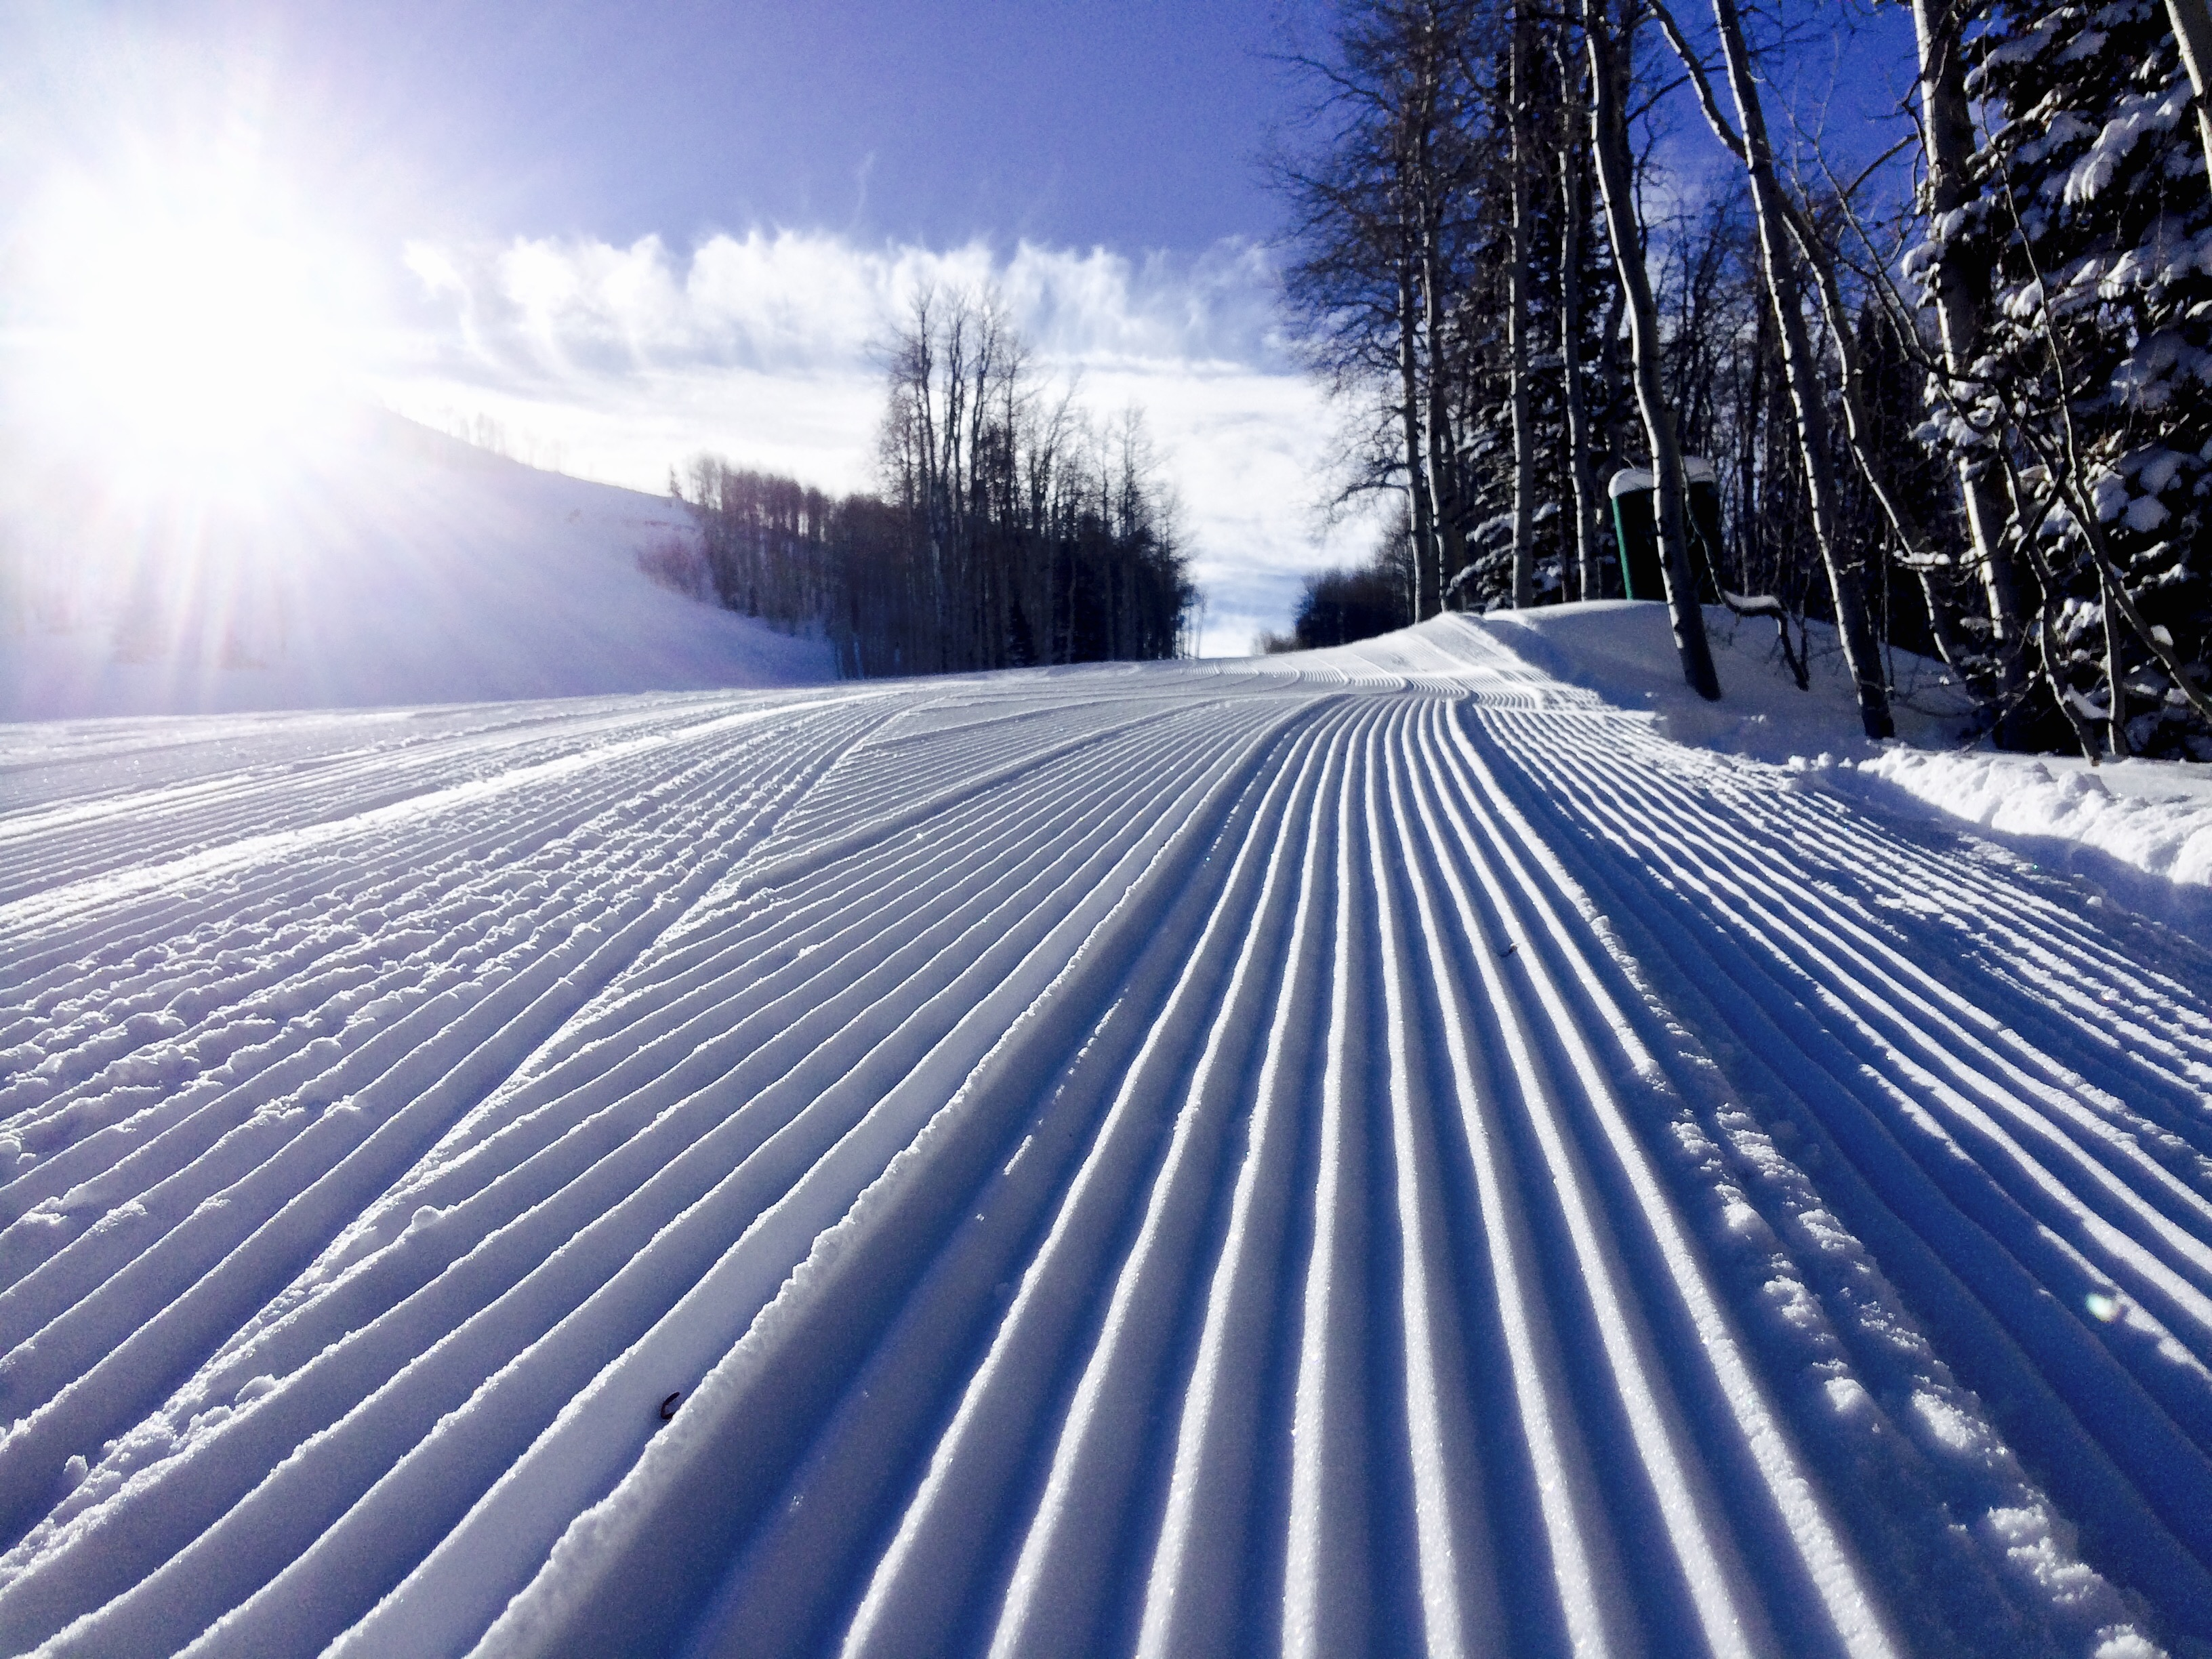 Perfect Grooming at Deer Valley Resort in Park City on Blue Bird Day